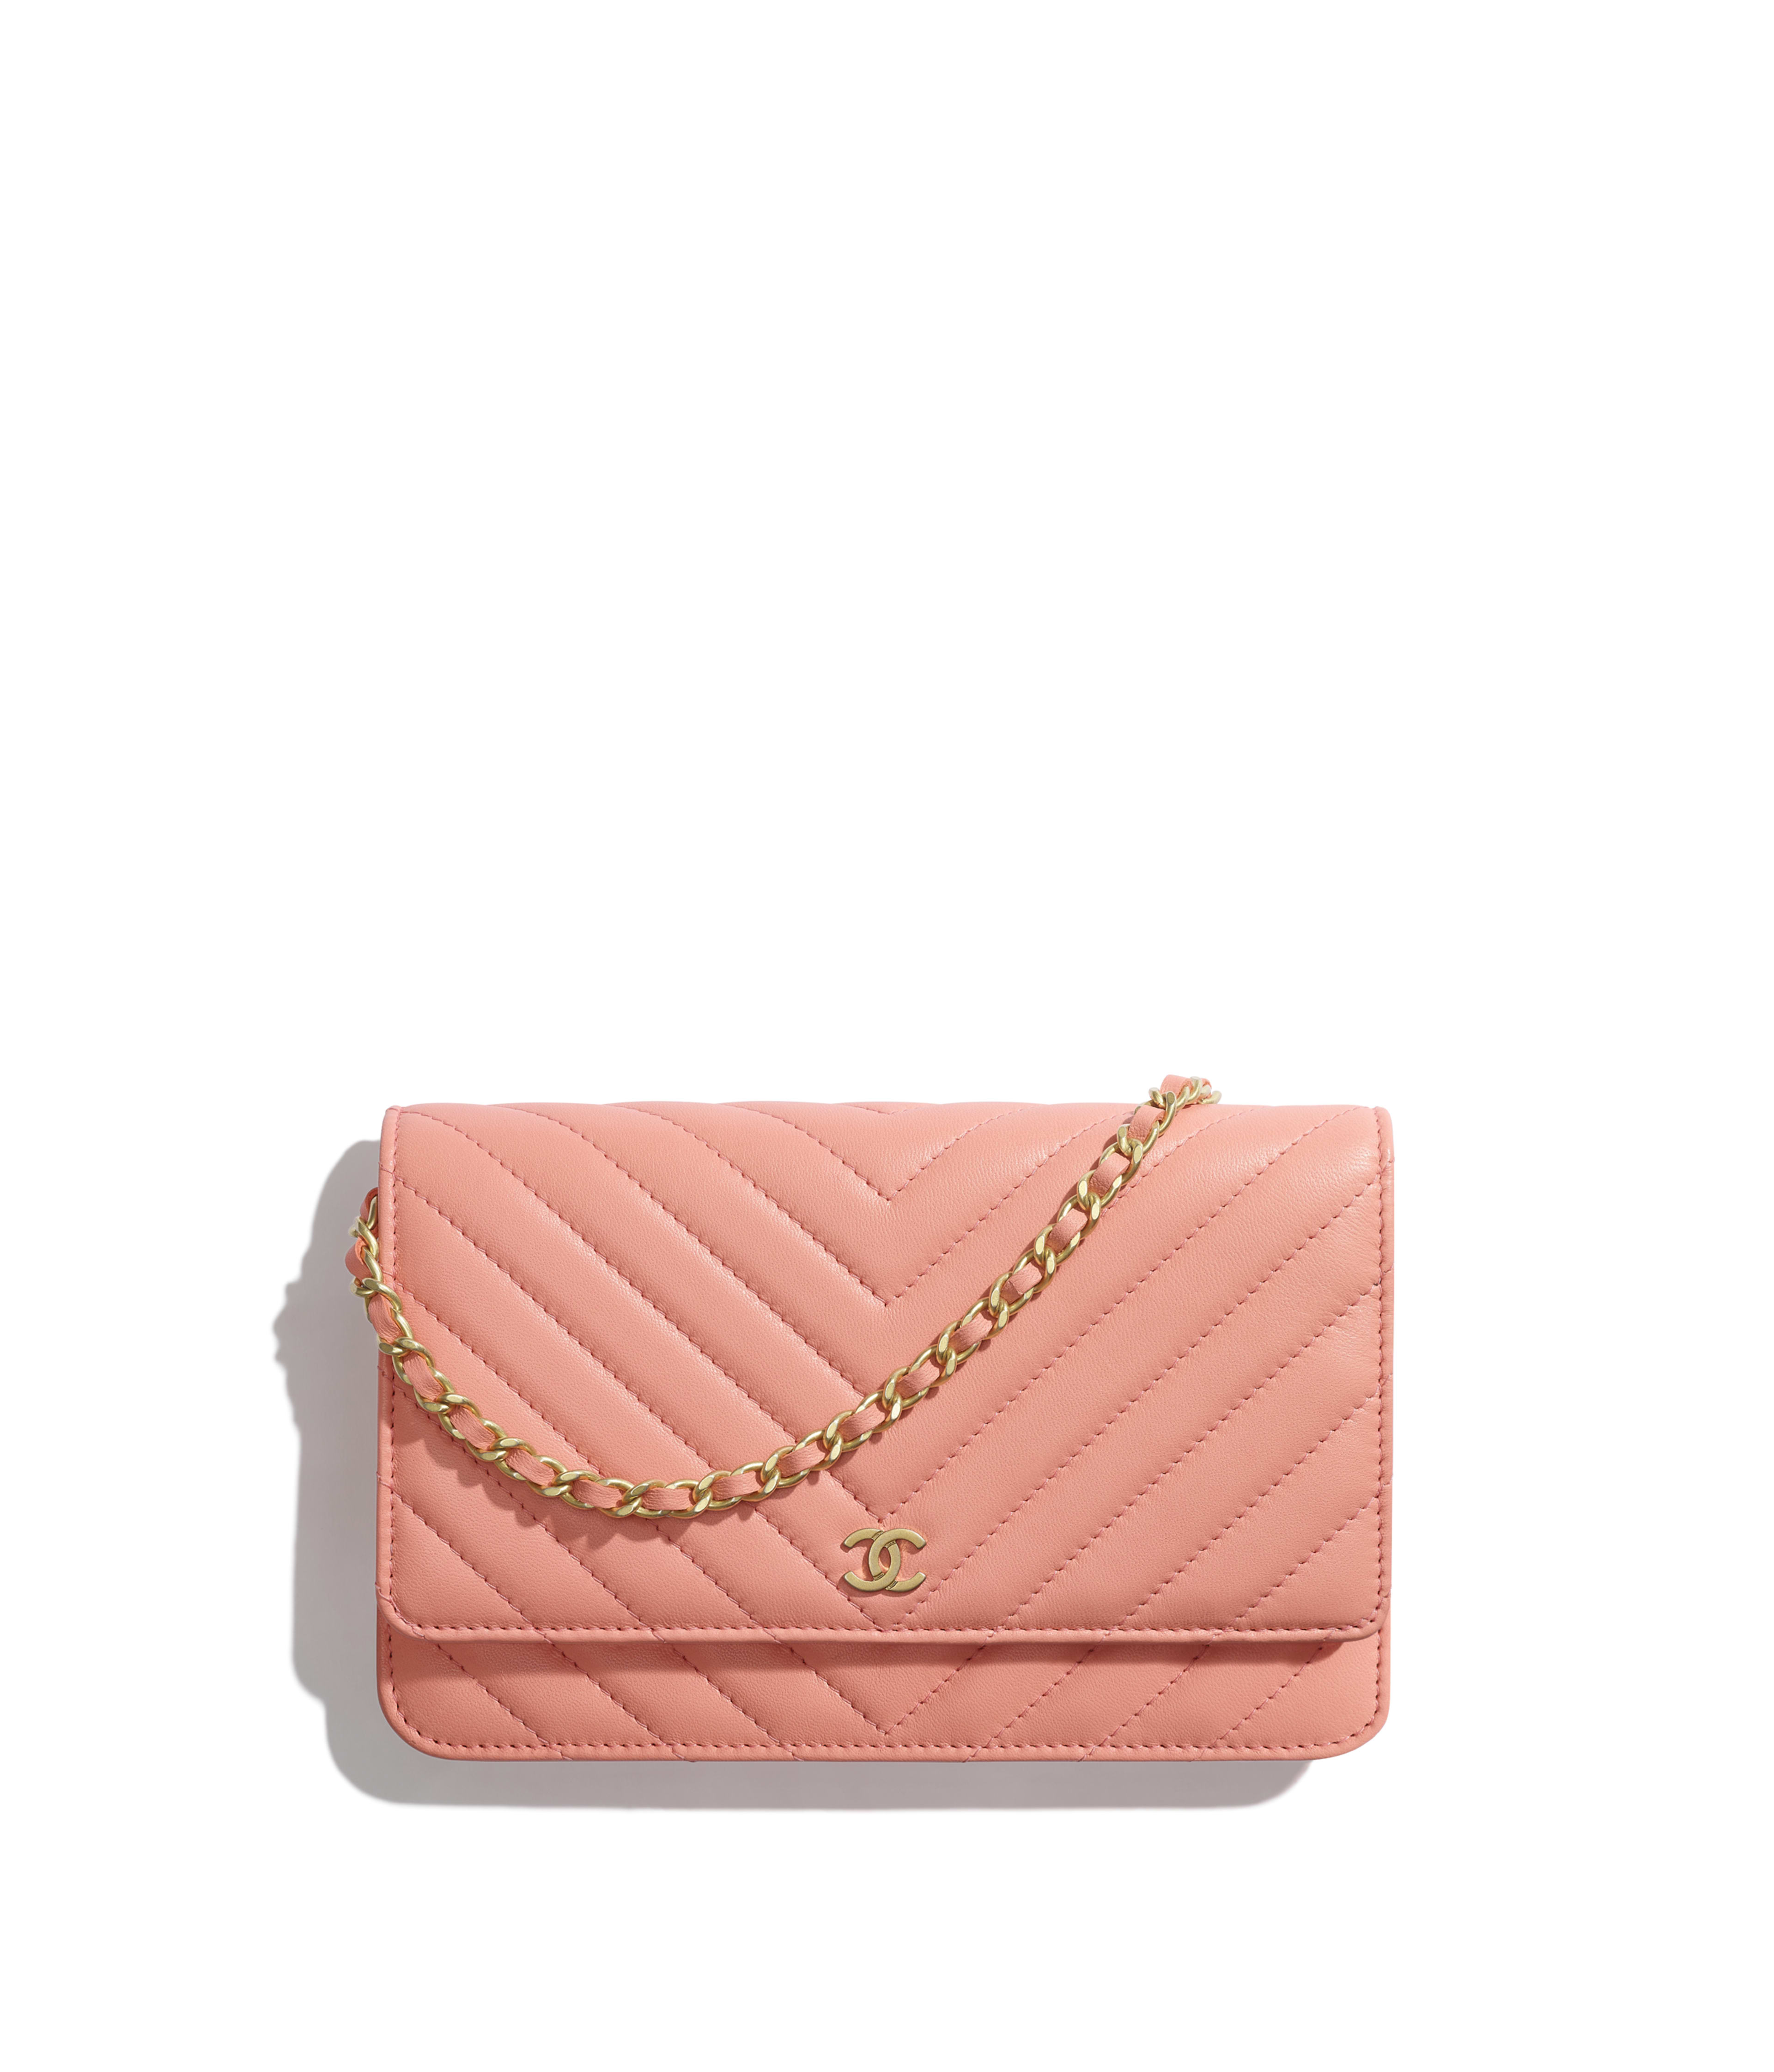 ad3366aae5a2 Classic Wallet on Chain Lambskin & Gold-Tone Metal, Coral Ref.  A33814Y33122N0899